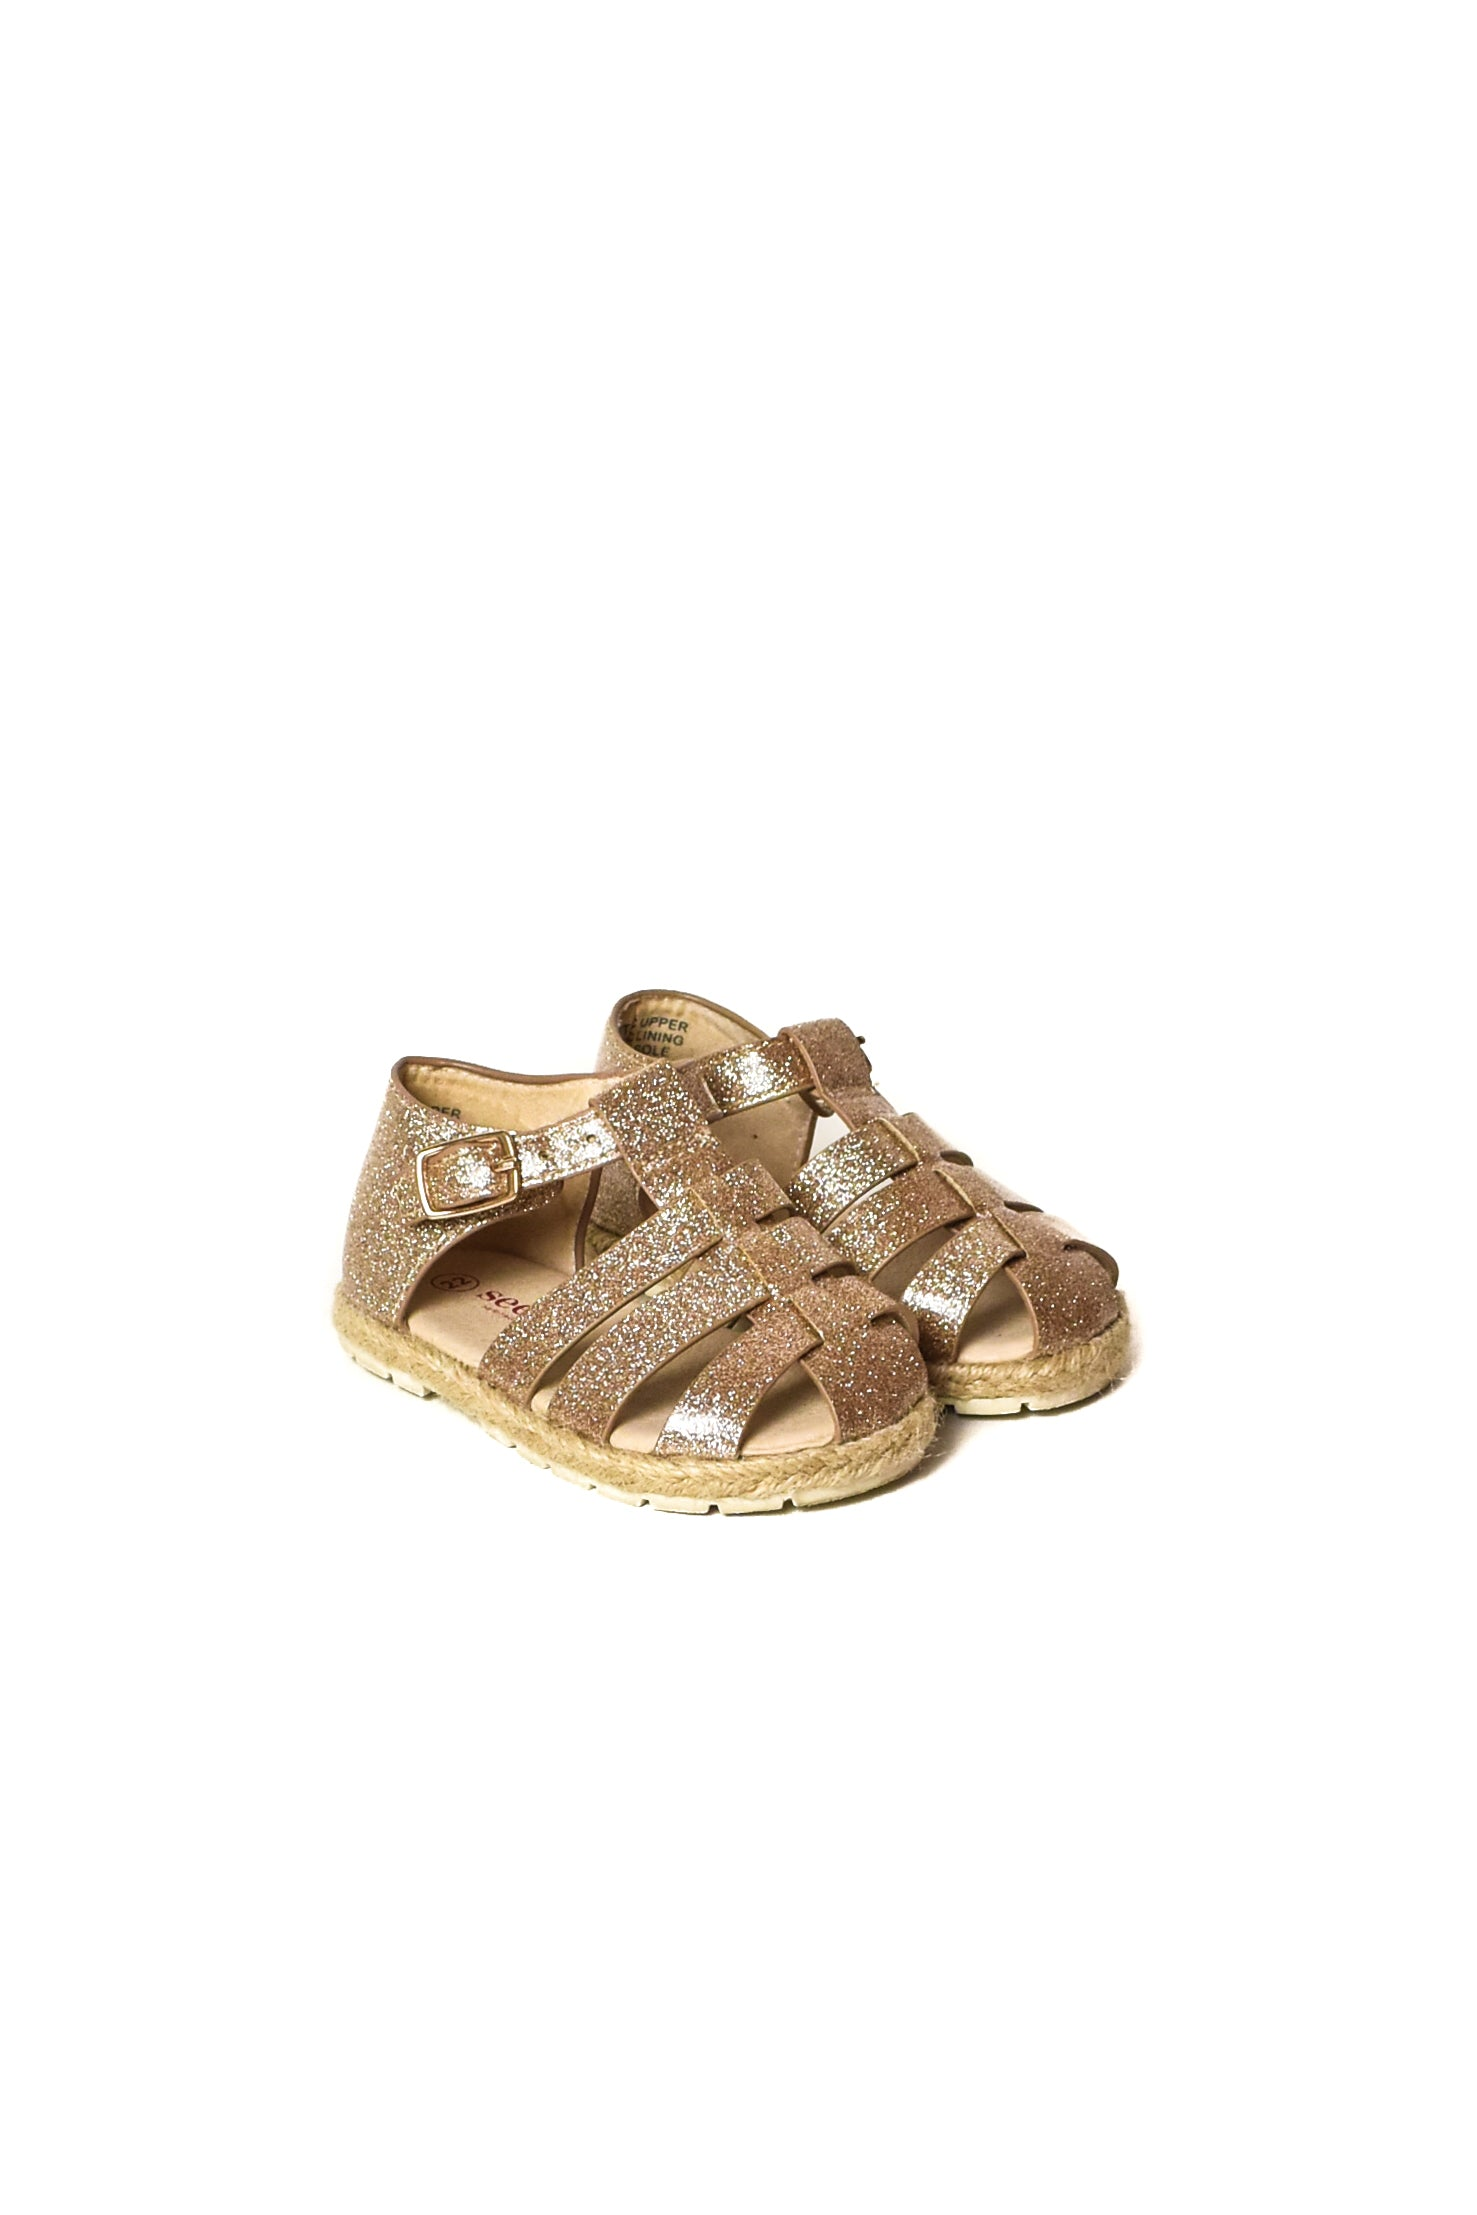 10012741 Seed Baby ~ Sandals 18-24M (EU 22) at Retykle